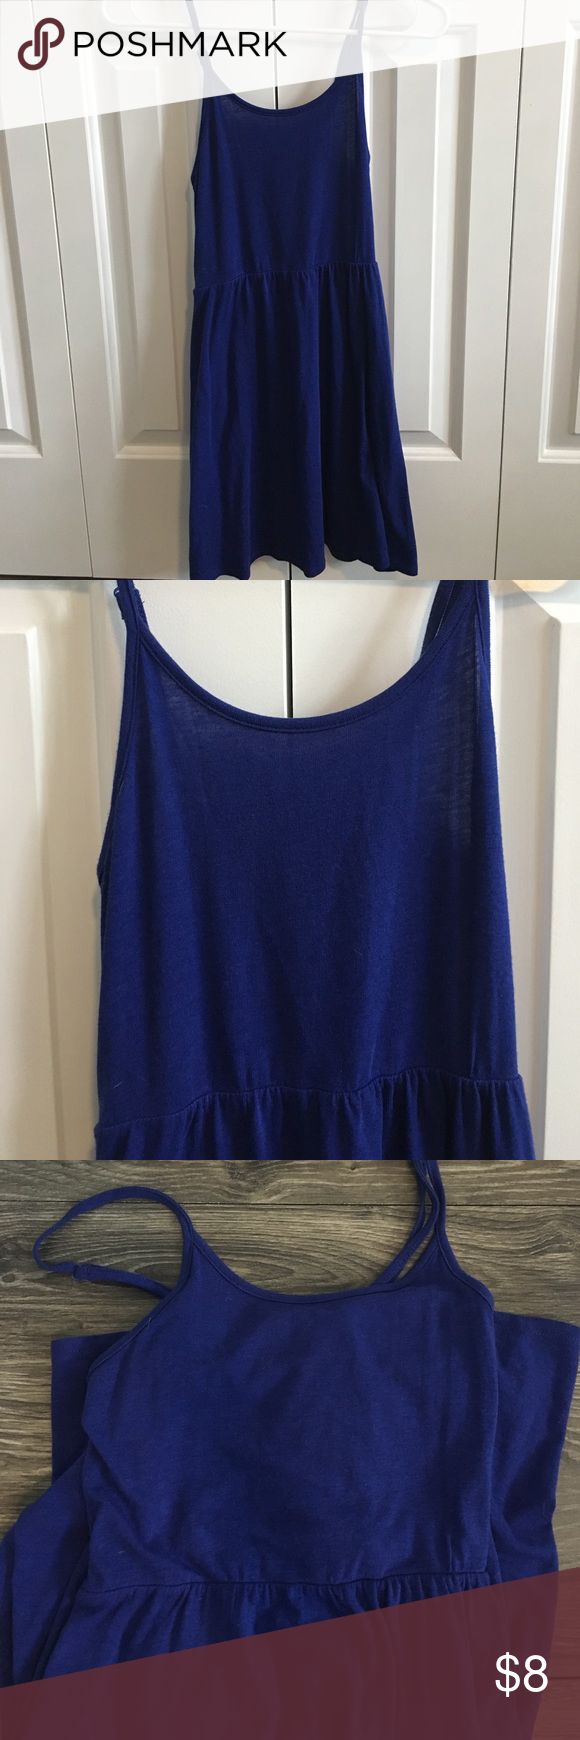 Forever 21 Midnight Blue Cami Dress Forever 21 cami dress with adjustable straps in a woman's size small. Super stretchy and very comfortable! Easy to dress down or even dress up! Forever 21 Dresses